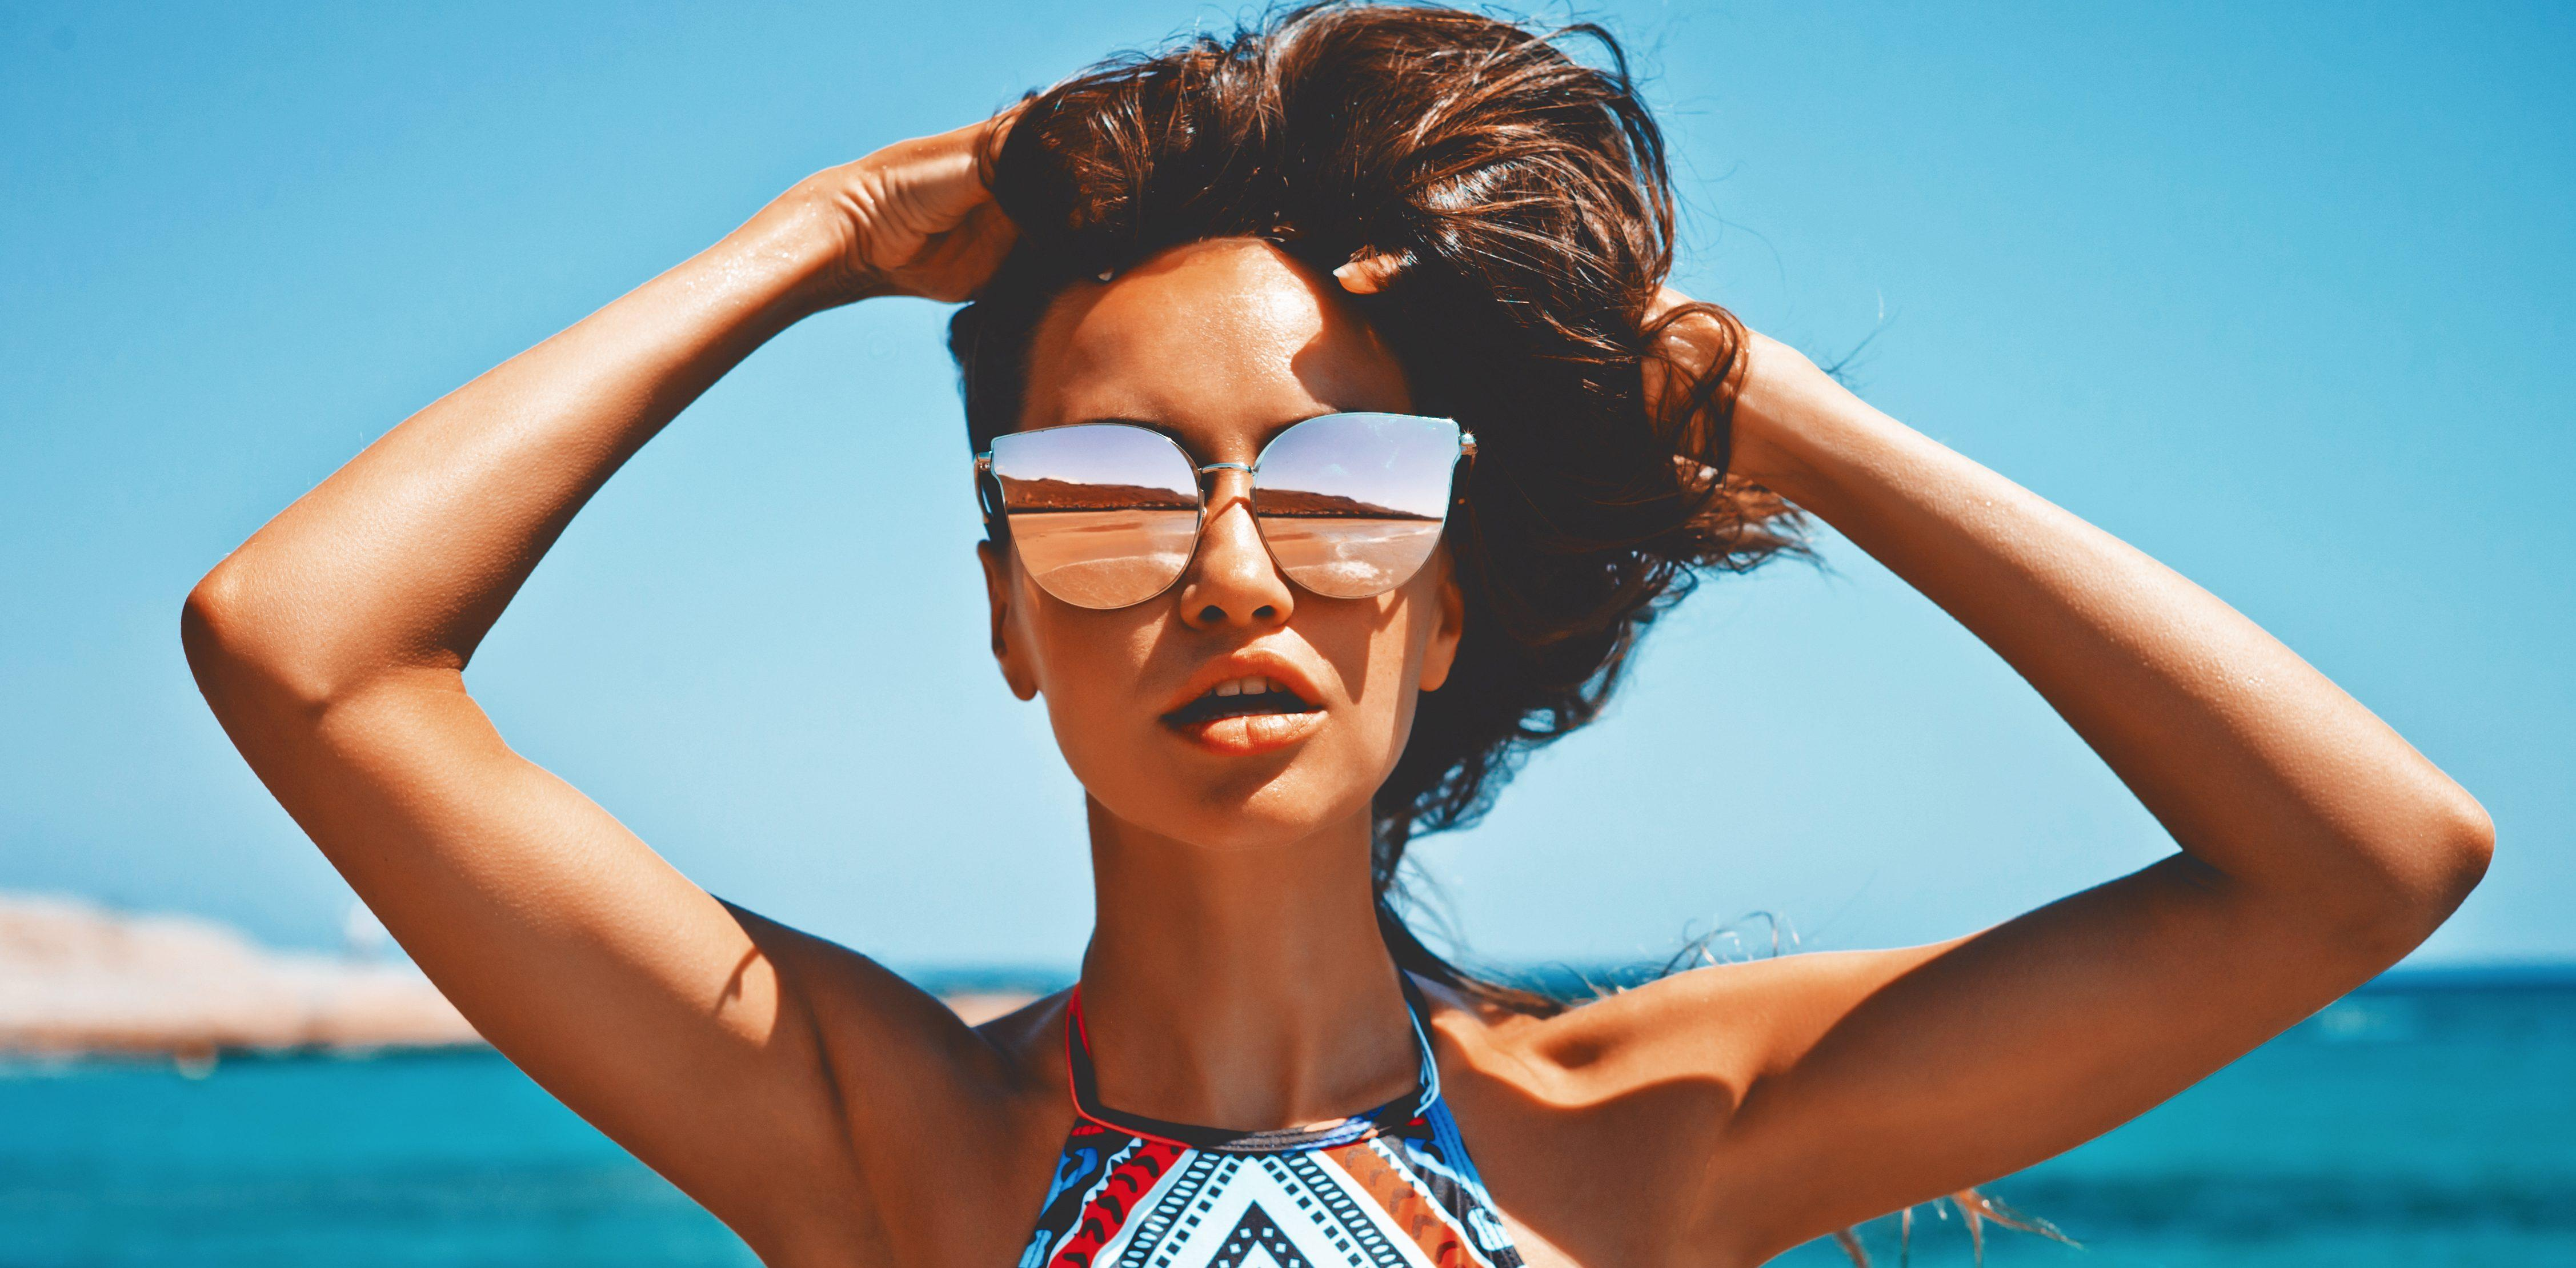 Give Your Hair a Break with These Essential Hair Care Tips After Vacation Ends